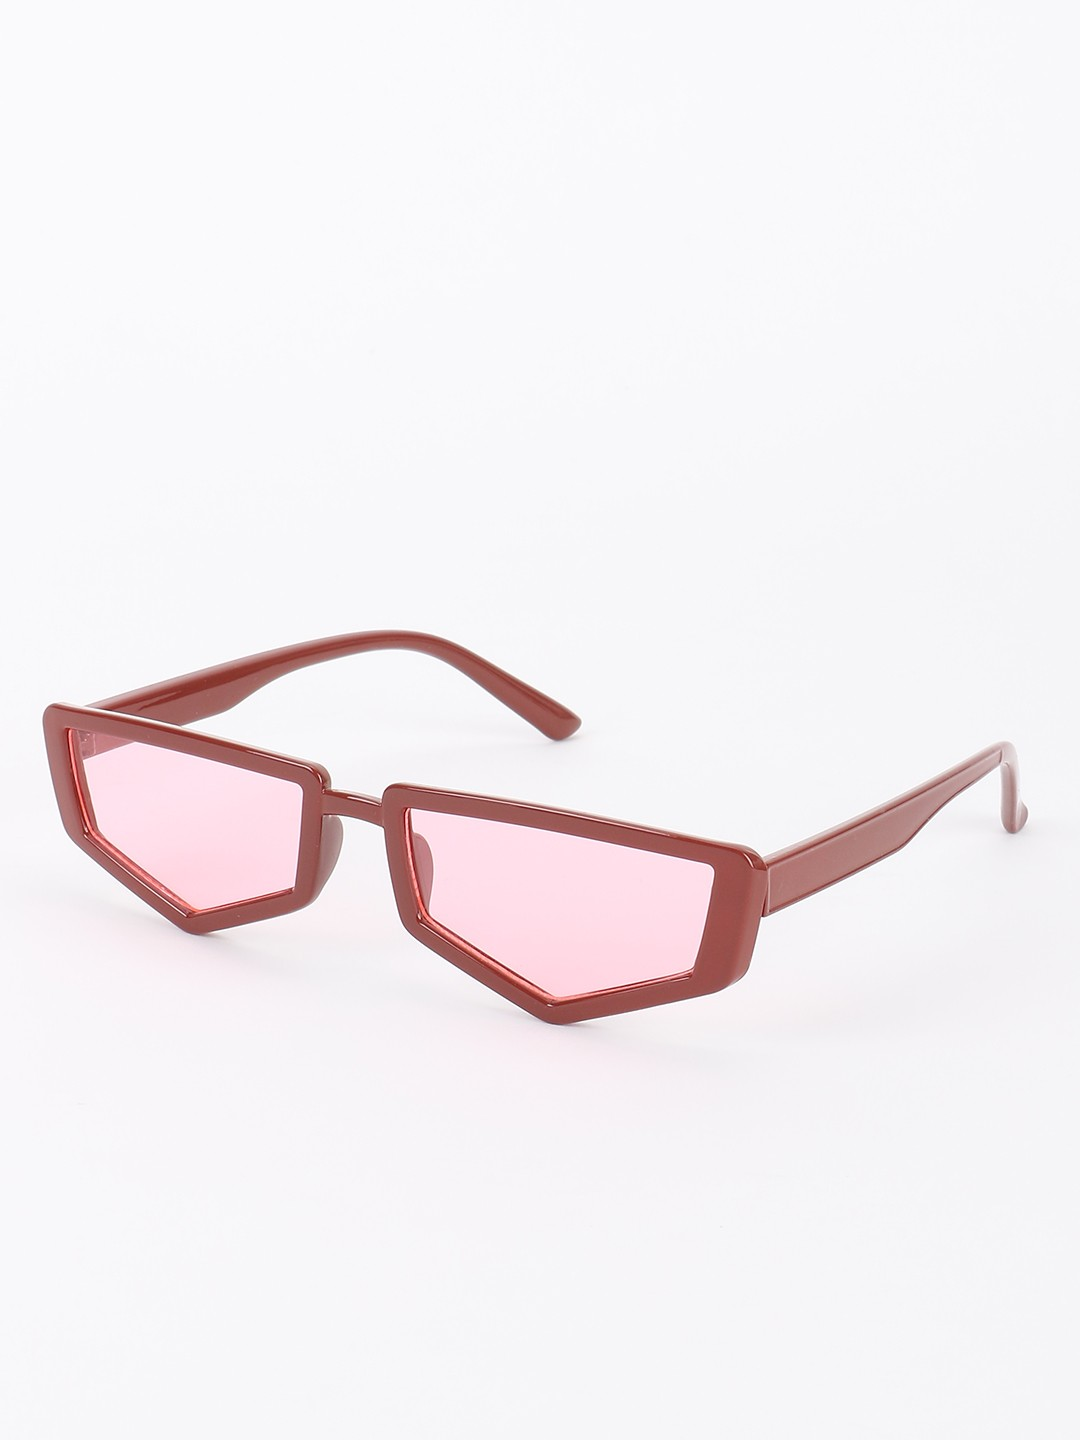 Sneak-a-Peek Red Pentagon Shape Classic Sunglasses 1